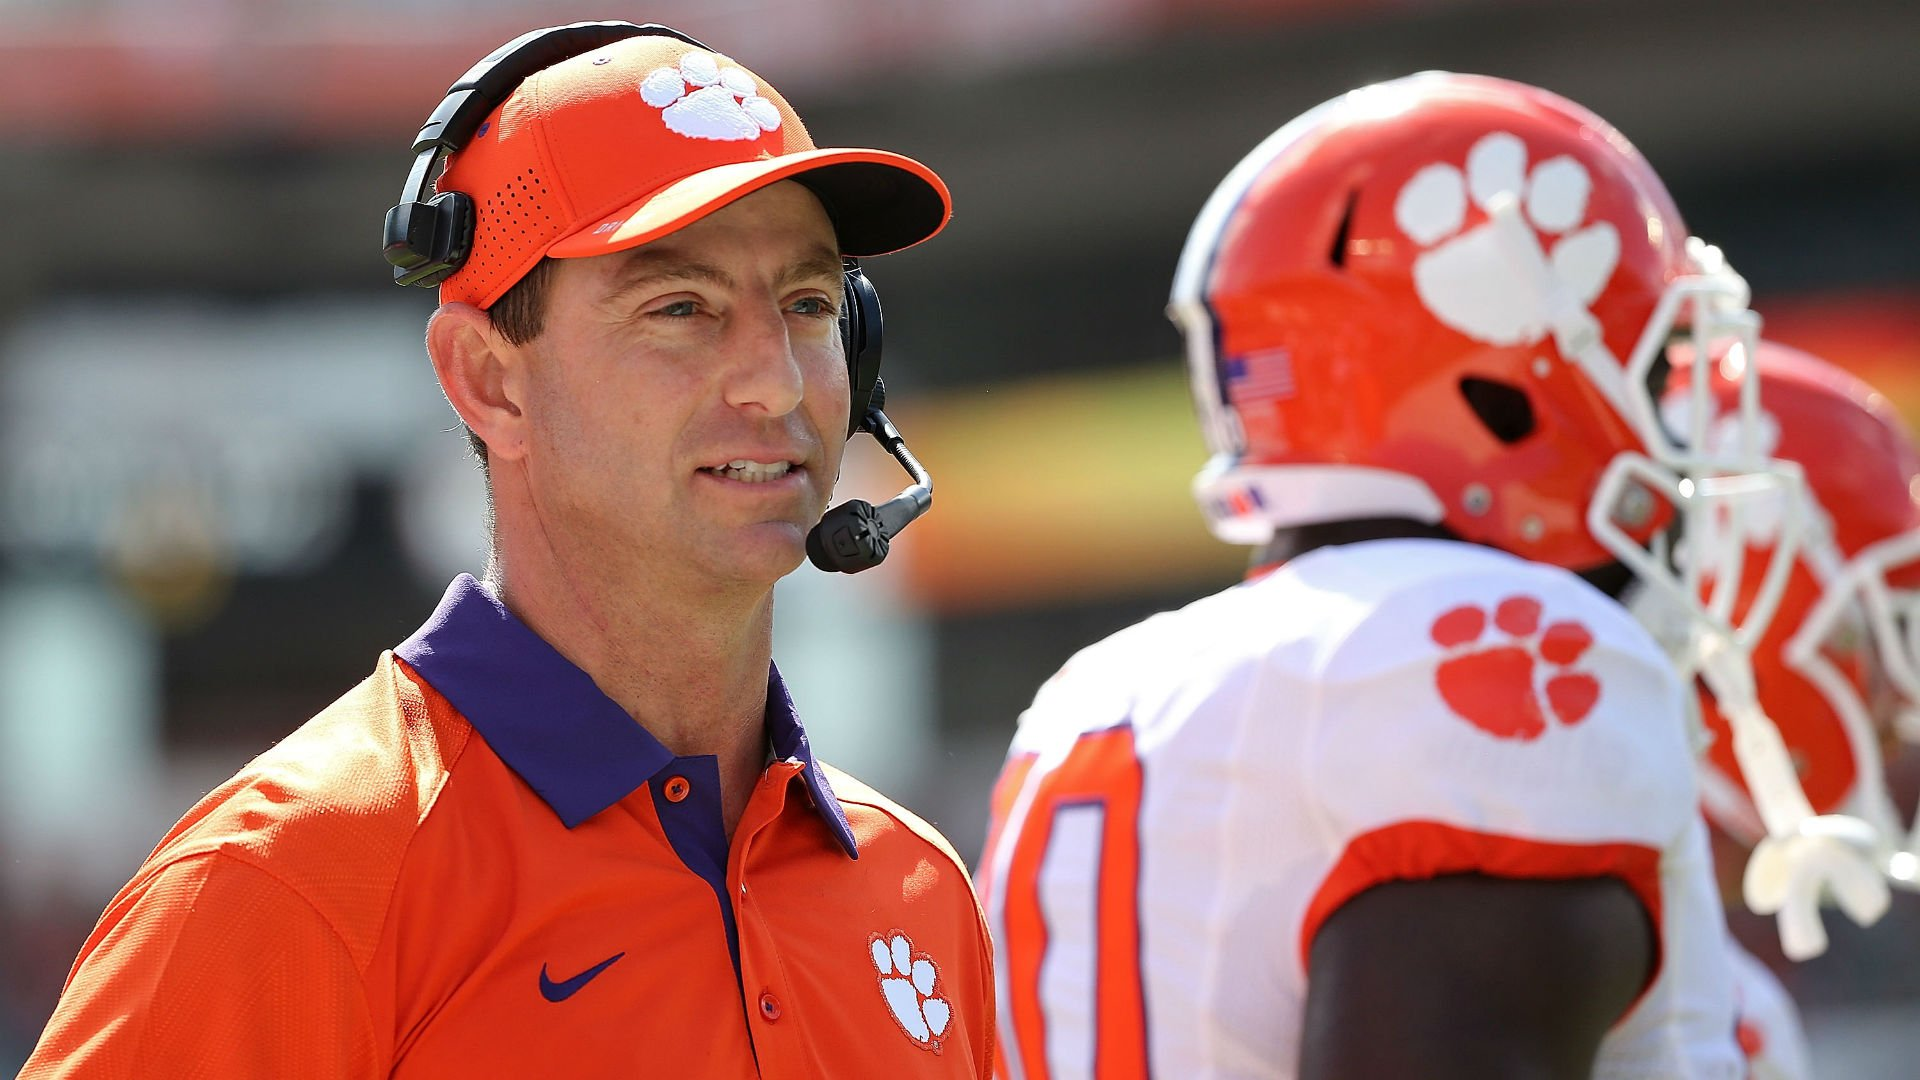 Clemson's Swinney fires back at Doeren